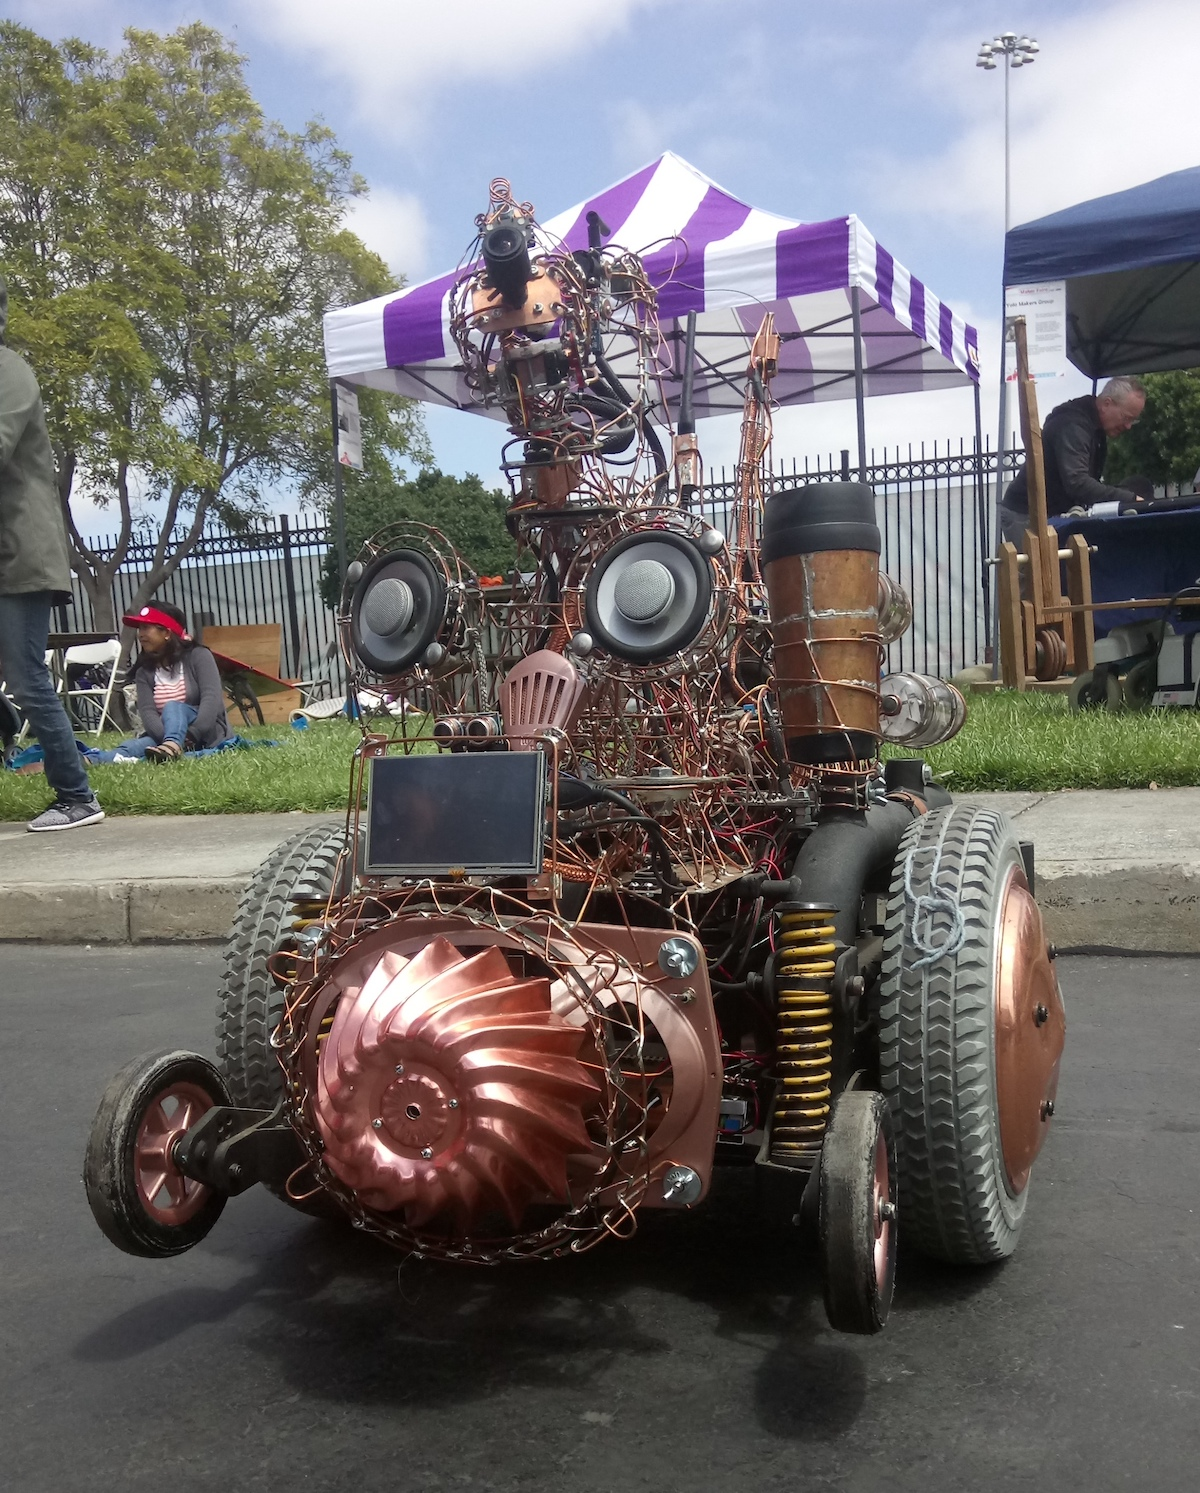 Live Updates From Maker Faire Bay Area 2018 Make Interview Questions Tutorials Circuits Motors Engines And More You Know When Have Some Components Lying Around Just Start With A Wheelchair Base Sensors Outputs Than Can Shake Stick At